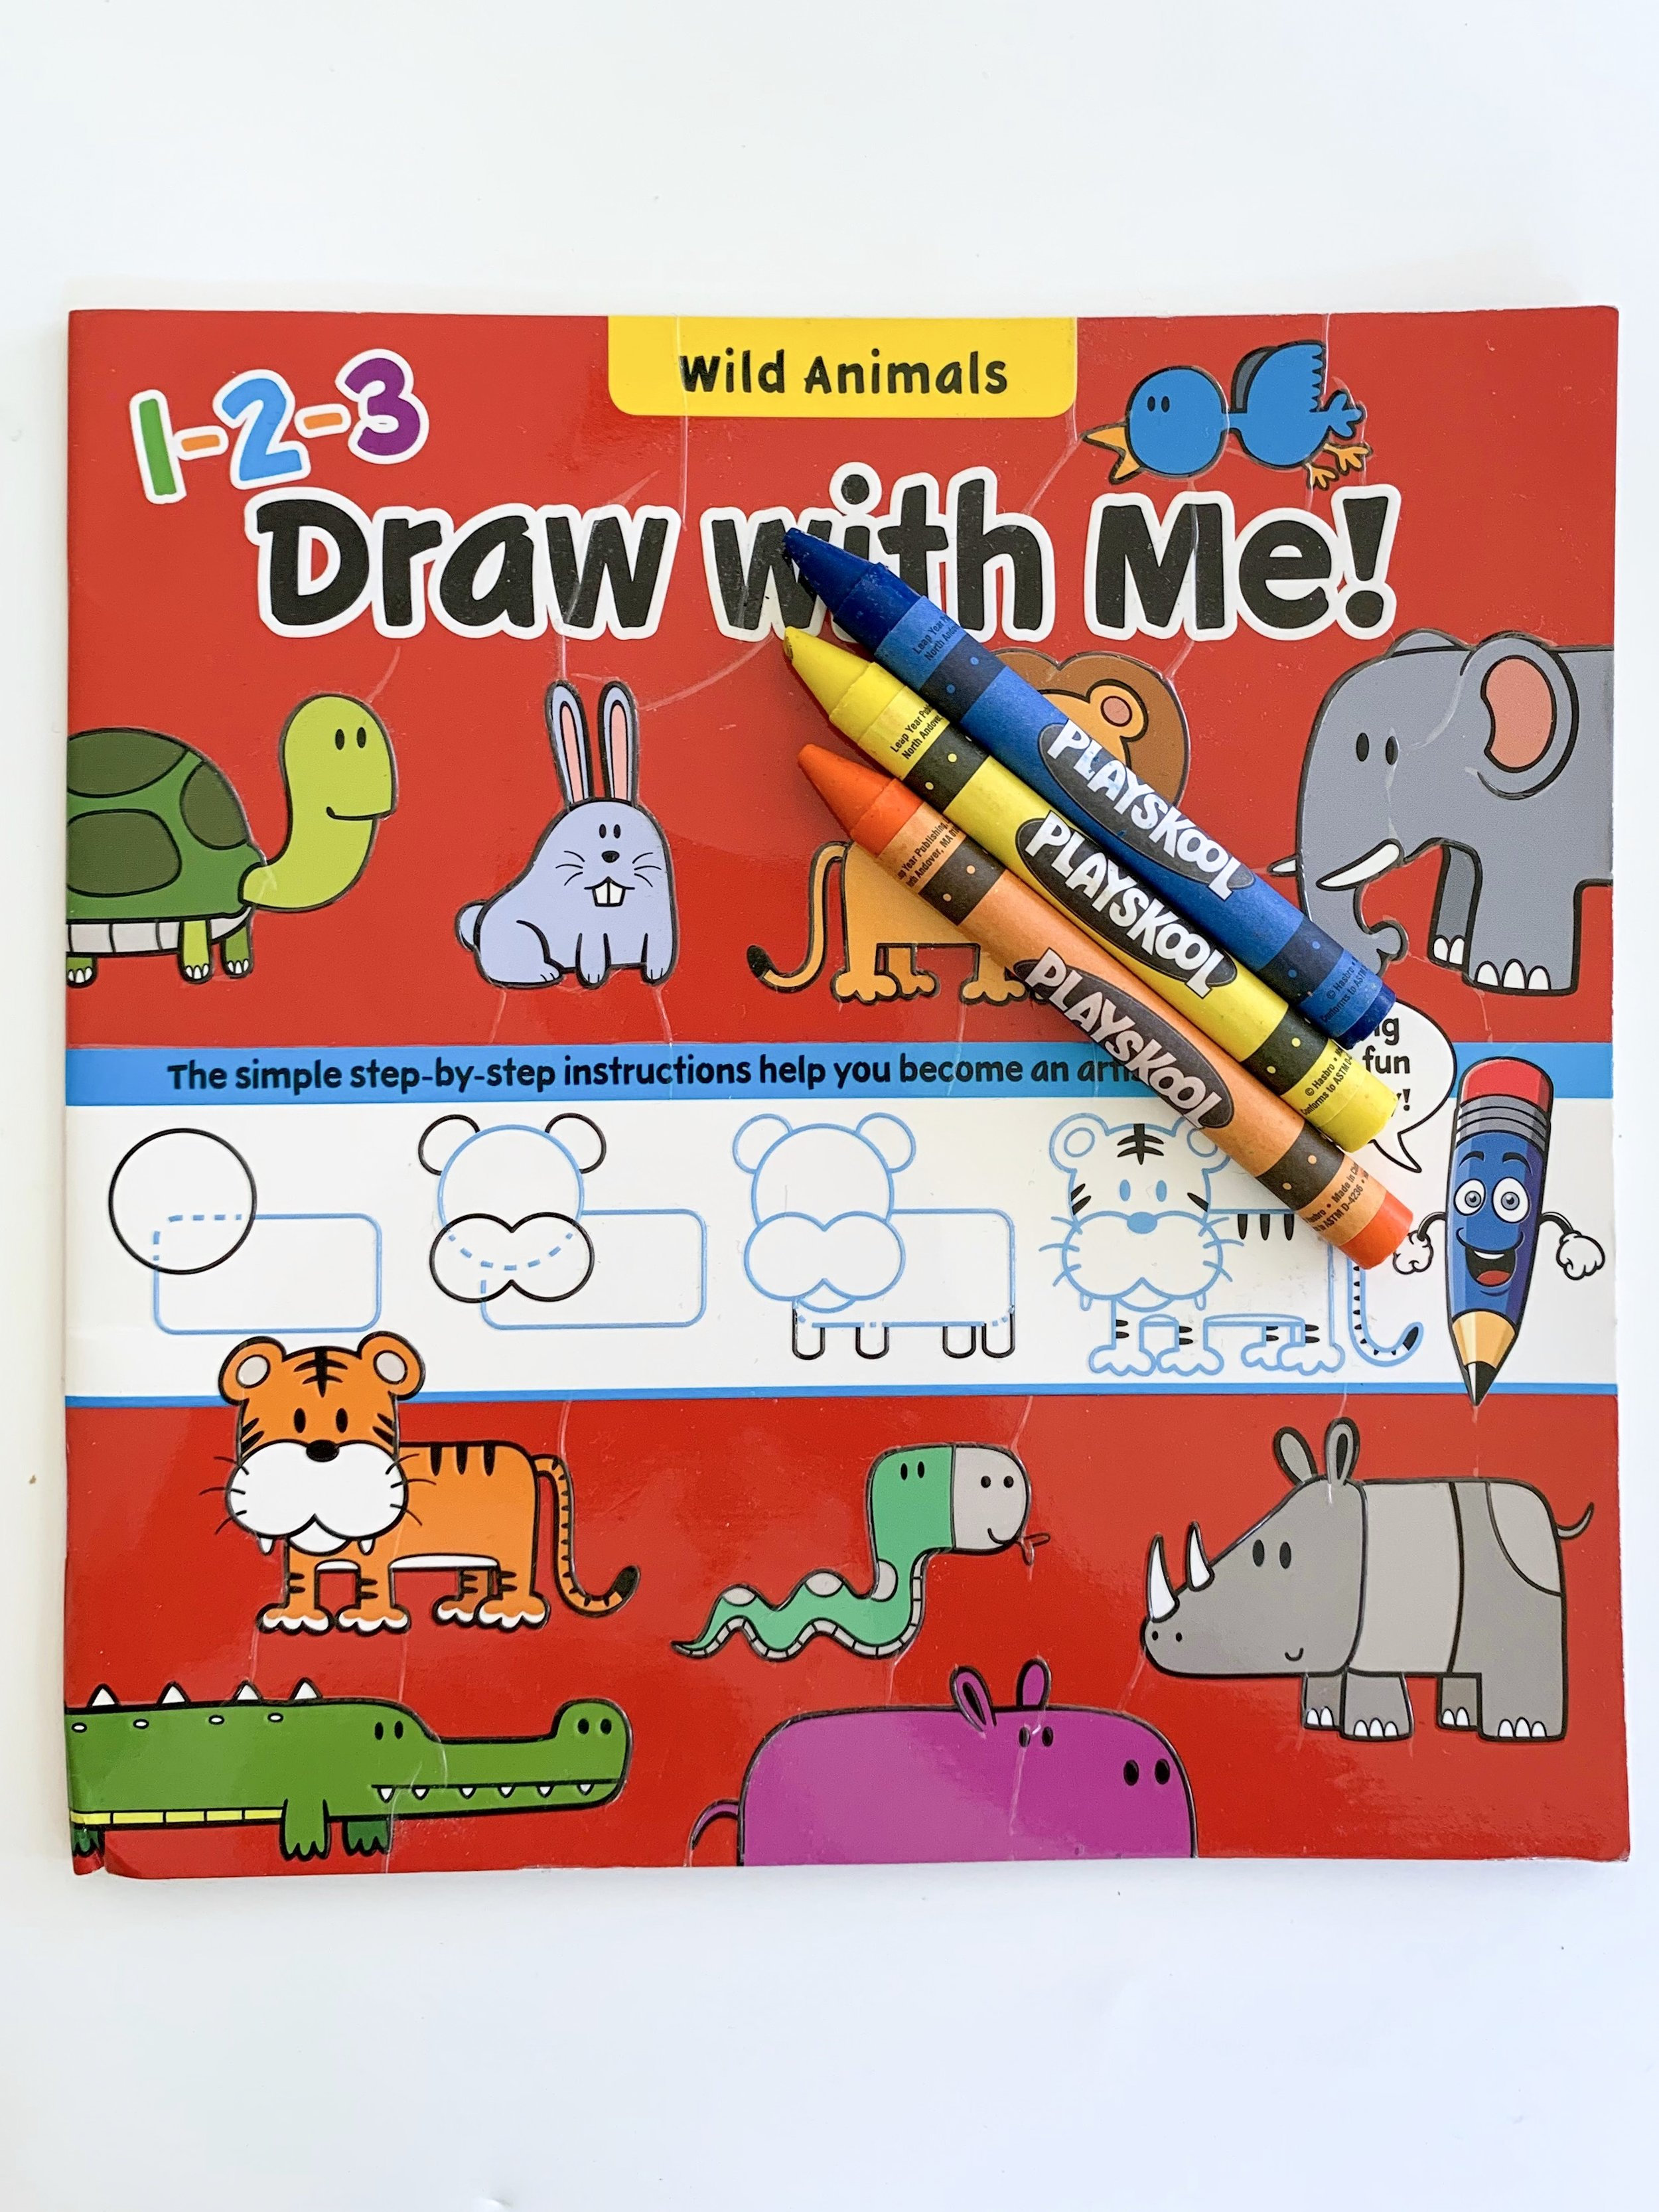 Coloring book and crayons some of the must haves for traveling internationally with a toddler